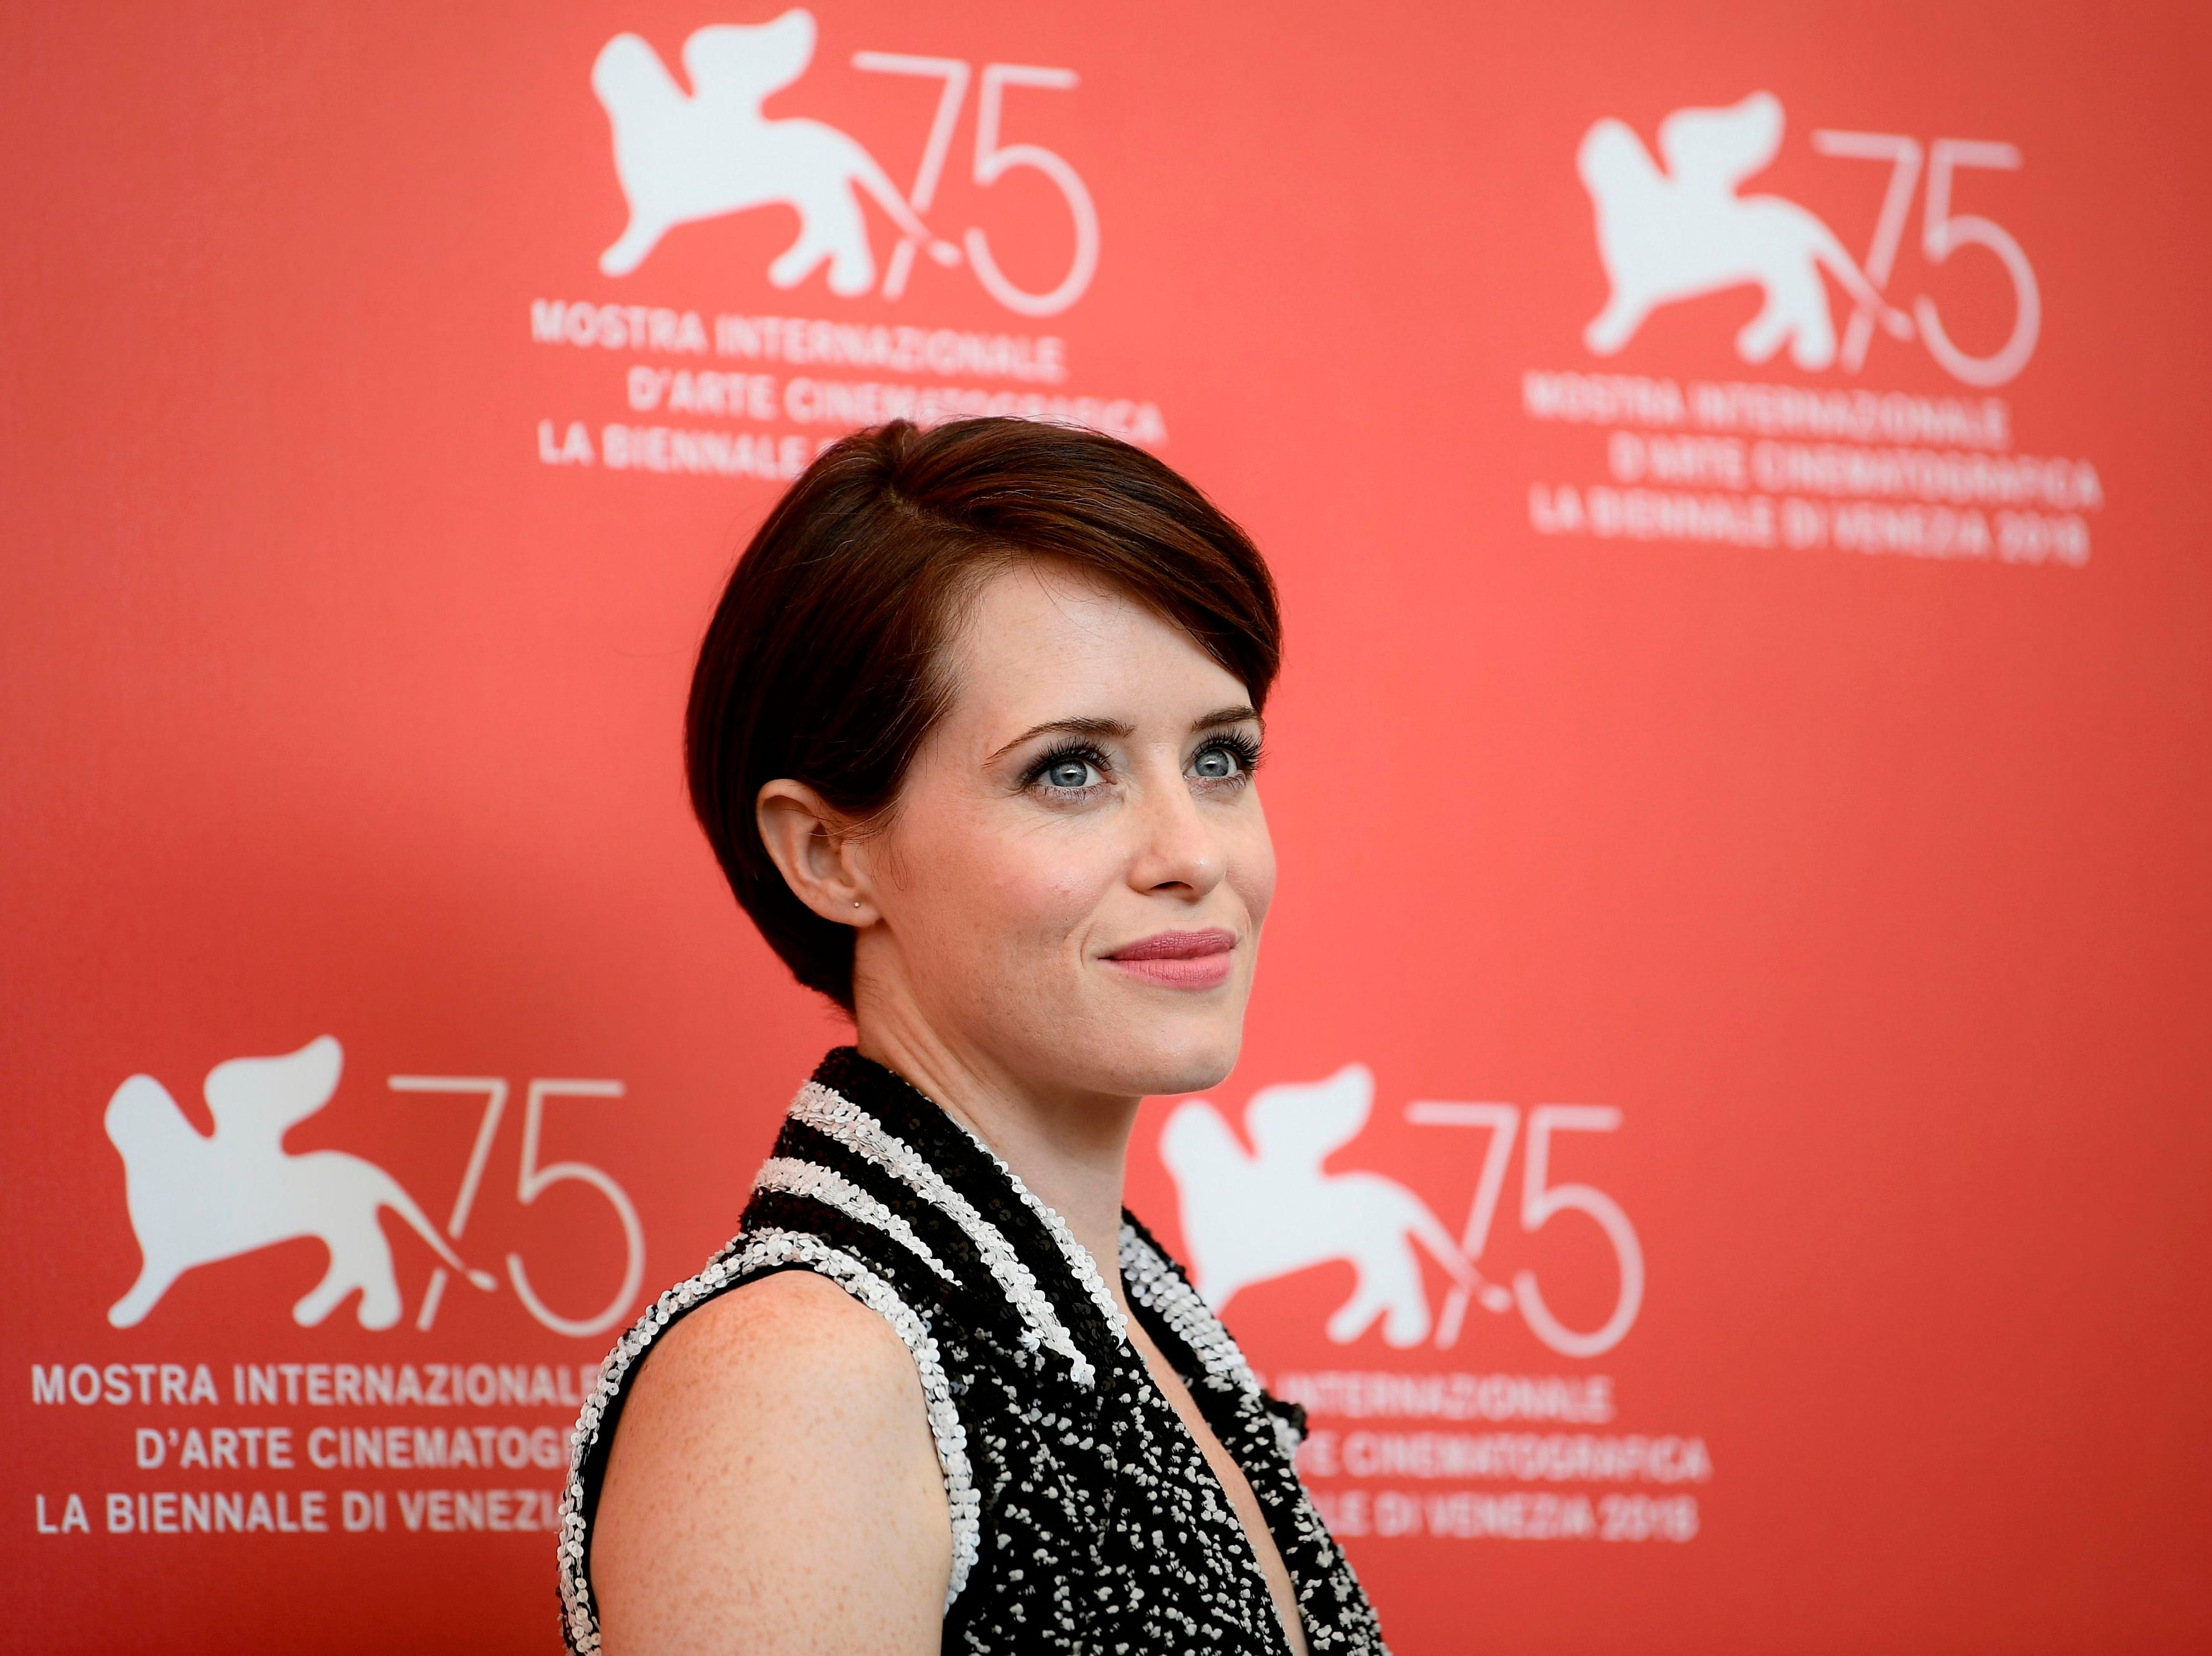 """Actress Claire Foy poses during a photocall for the film """"First Man"""" on August 29, 2018 prior to its premiere in competition at the 75th Venice Film Festival at Venice Lido. (Photo by Filippo MONTEFORTE / AFP)FILIPPO MONTEFORTE/AFP/Getty Images ORIG FILE ID: AFP_18O8ZM"""